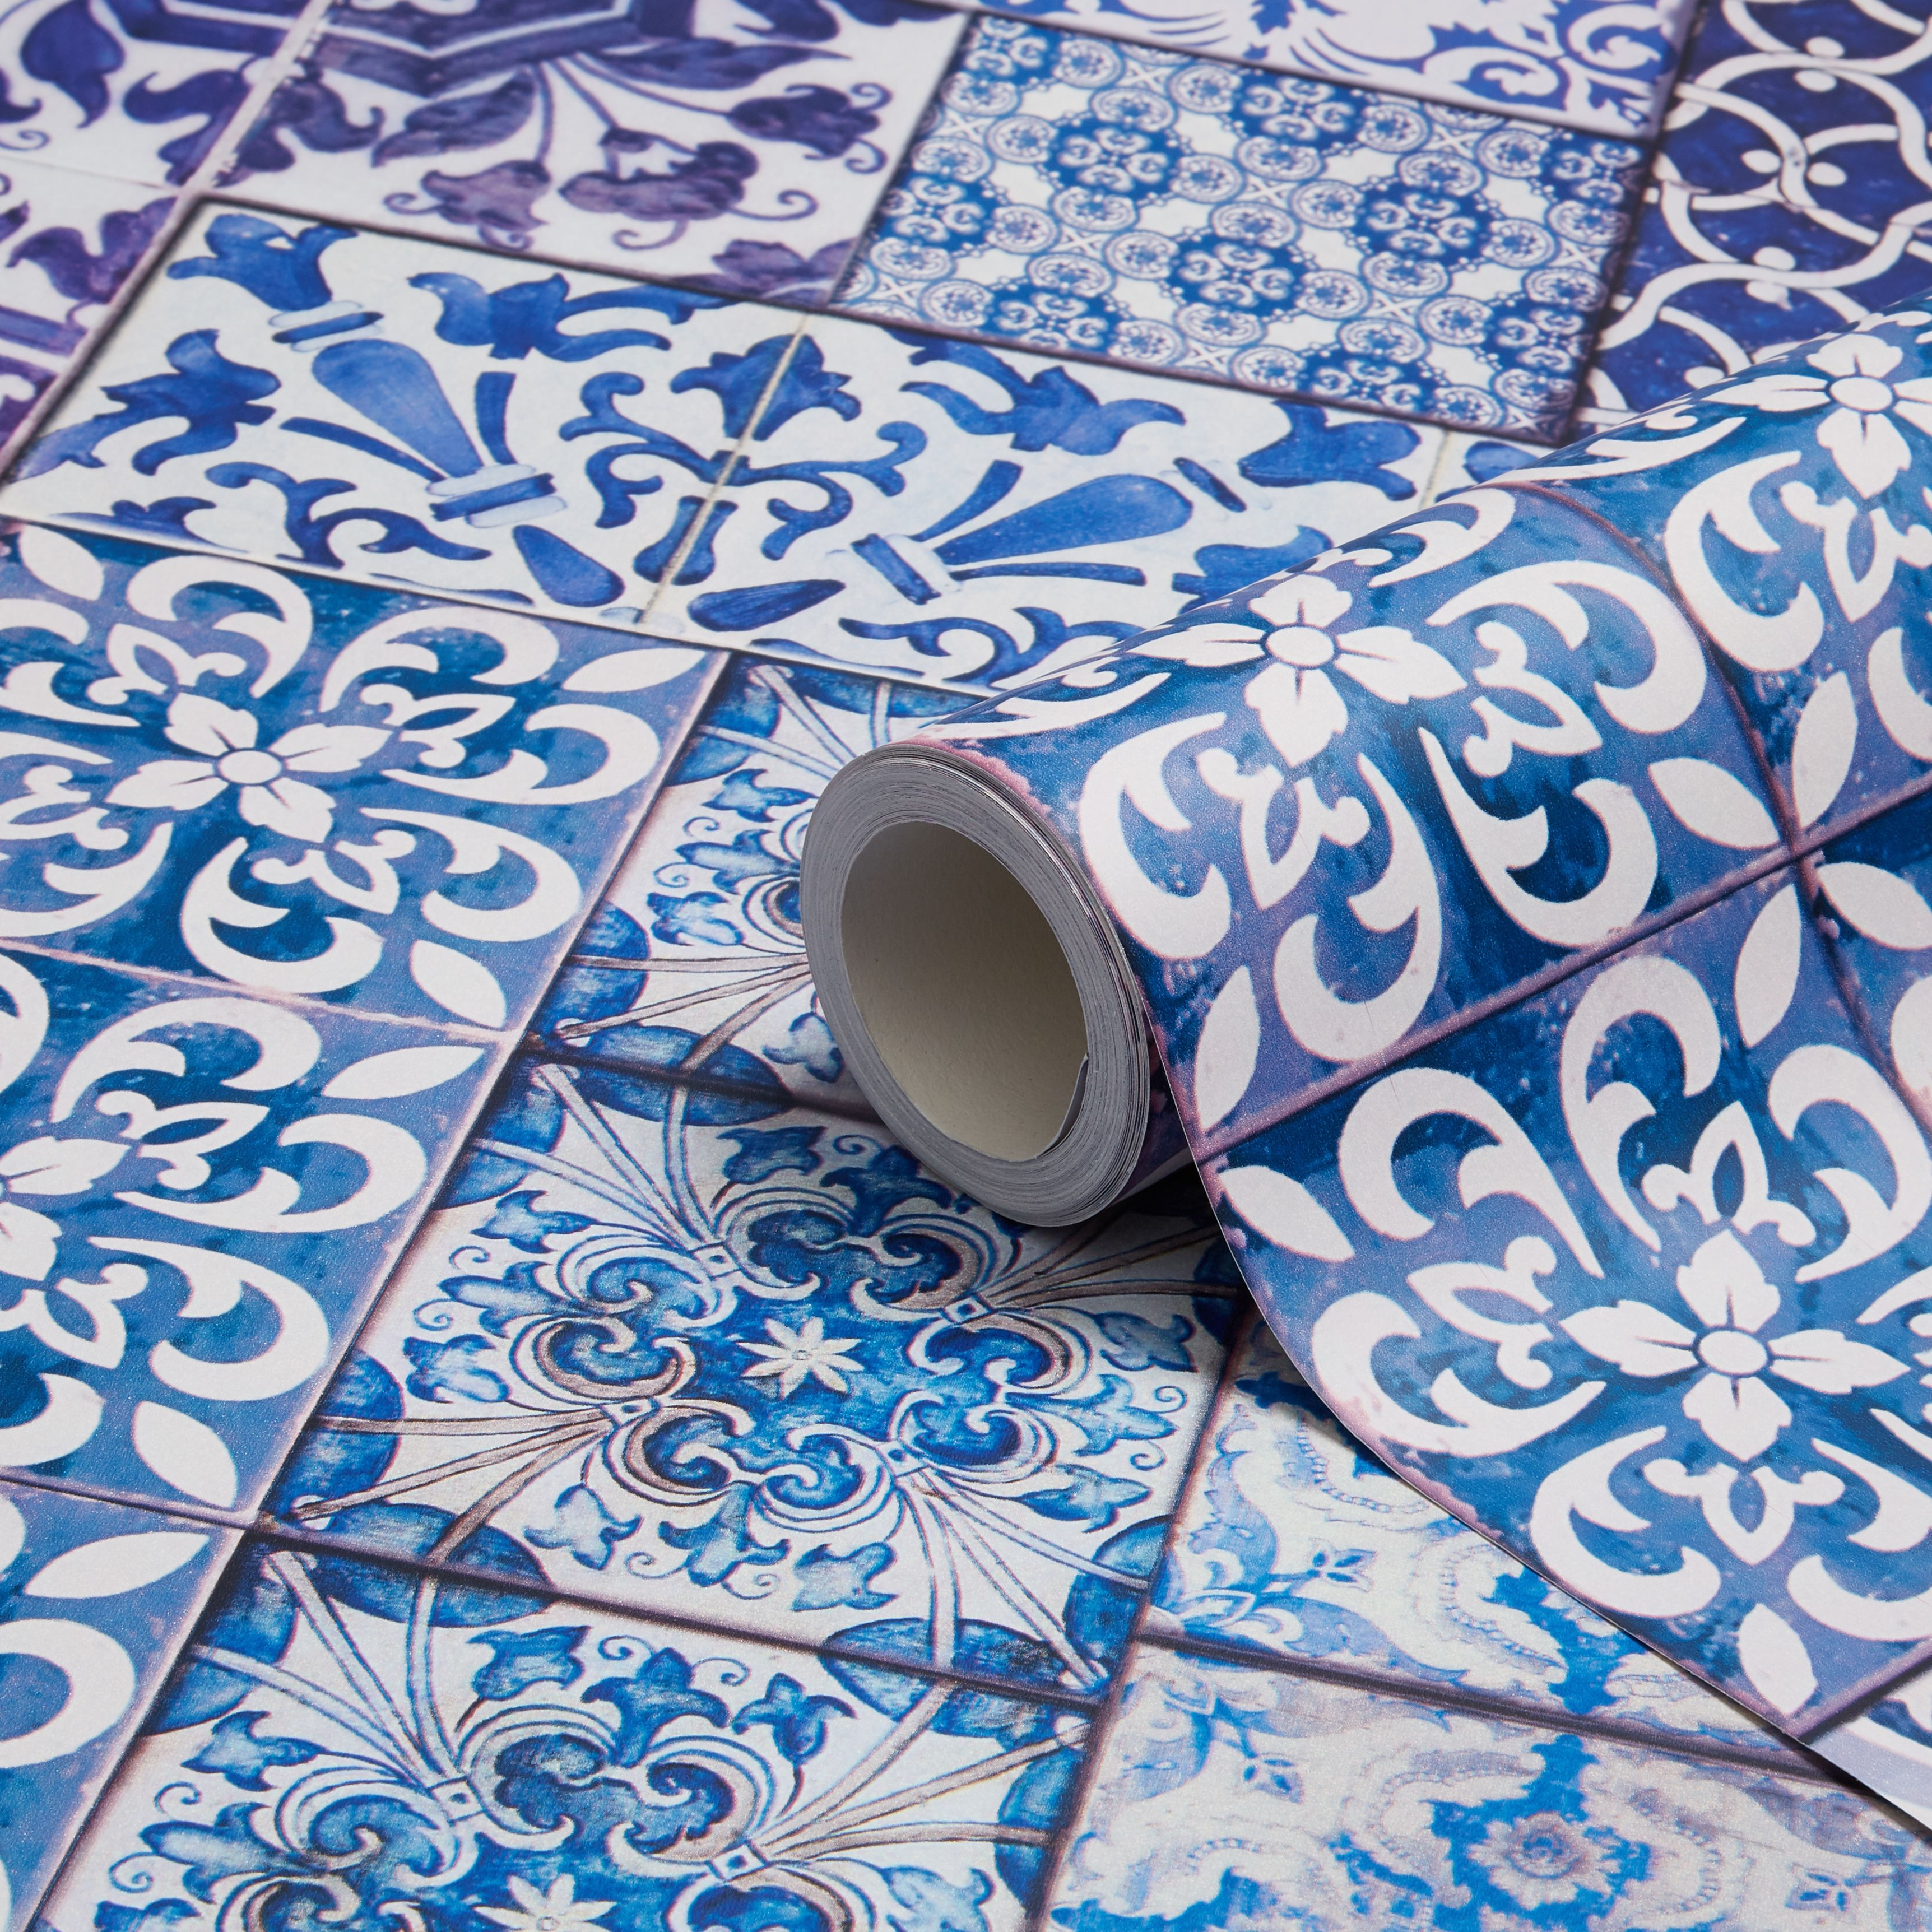 Muriva Blue Moroccan Tiles Wallpaper Clearance DIY at BQ